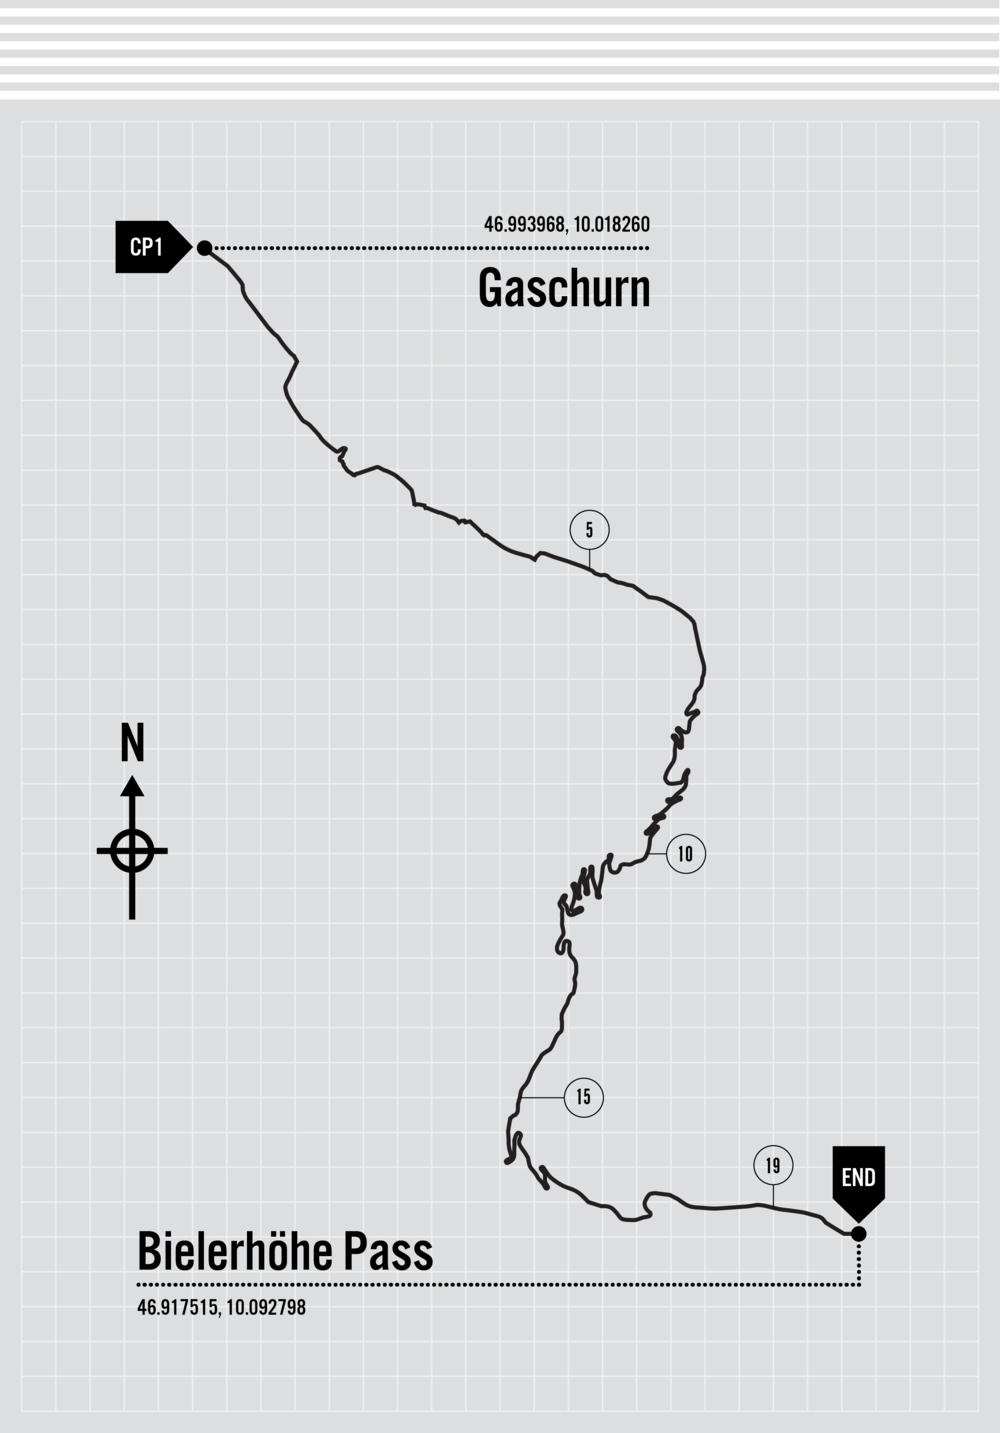 CP1 MAP.png